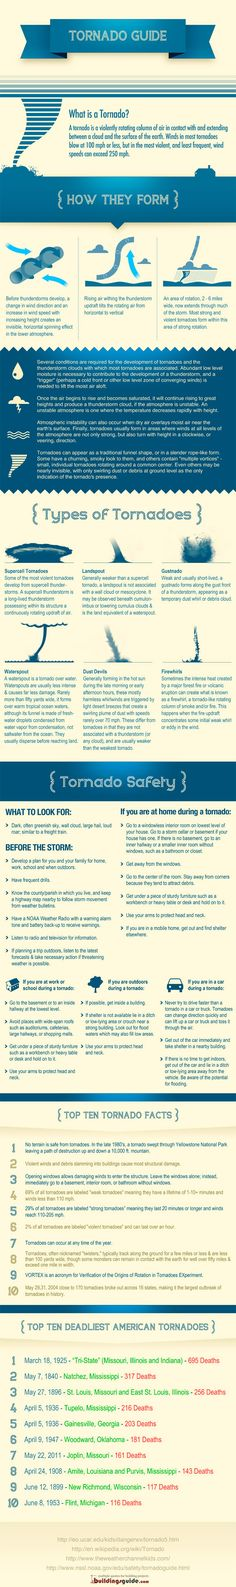 Tornado Facts & SafetyTips  Tornadoes can have devastating effects on homes, businesses, andcommunities as a whole. The tornado guide infographic below includes facts, safety tips and information about tornadoes such as how tornadoes form, types of tornadoes, tornado safety and the top 10 deadliest and most destructive tornadoes in history.